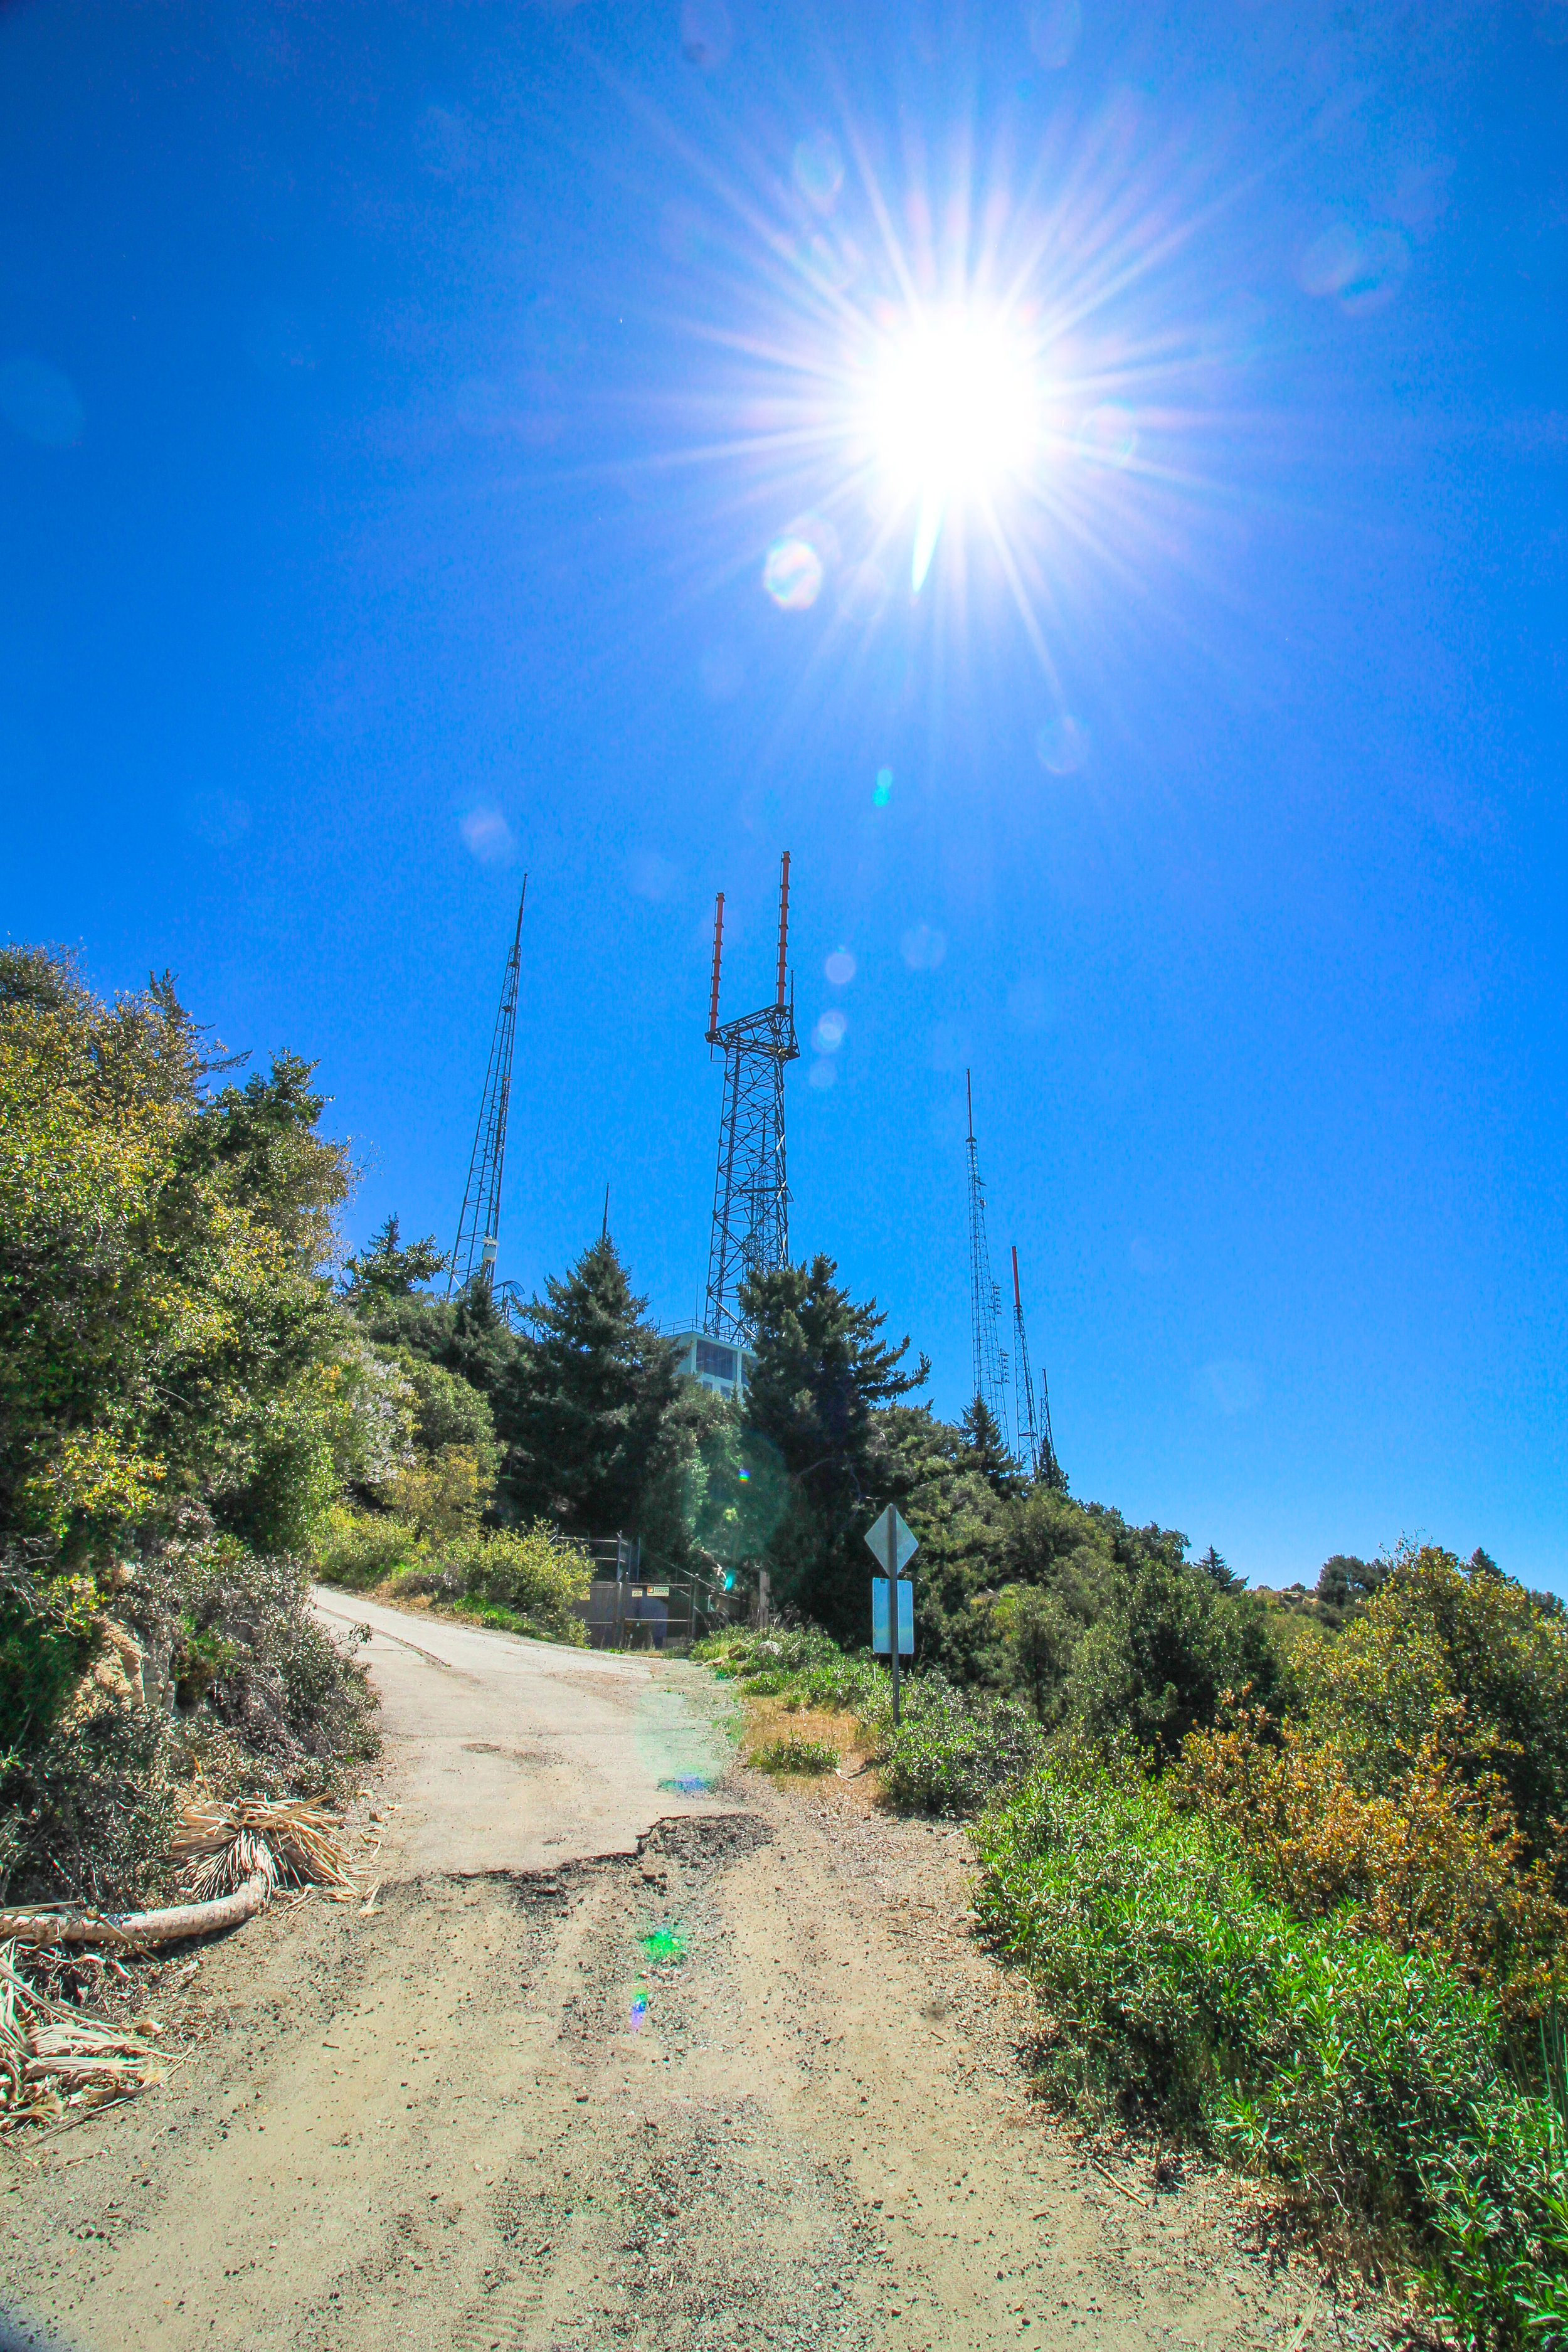 Looking up at the Antennas on Mt. Wilson.